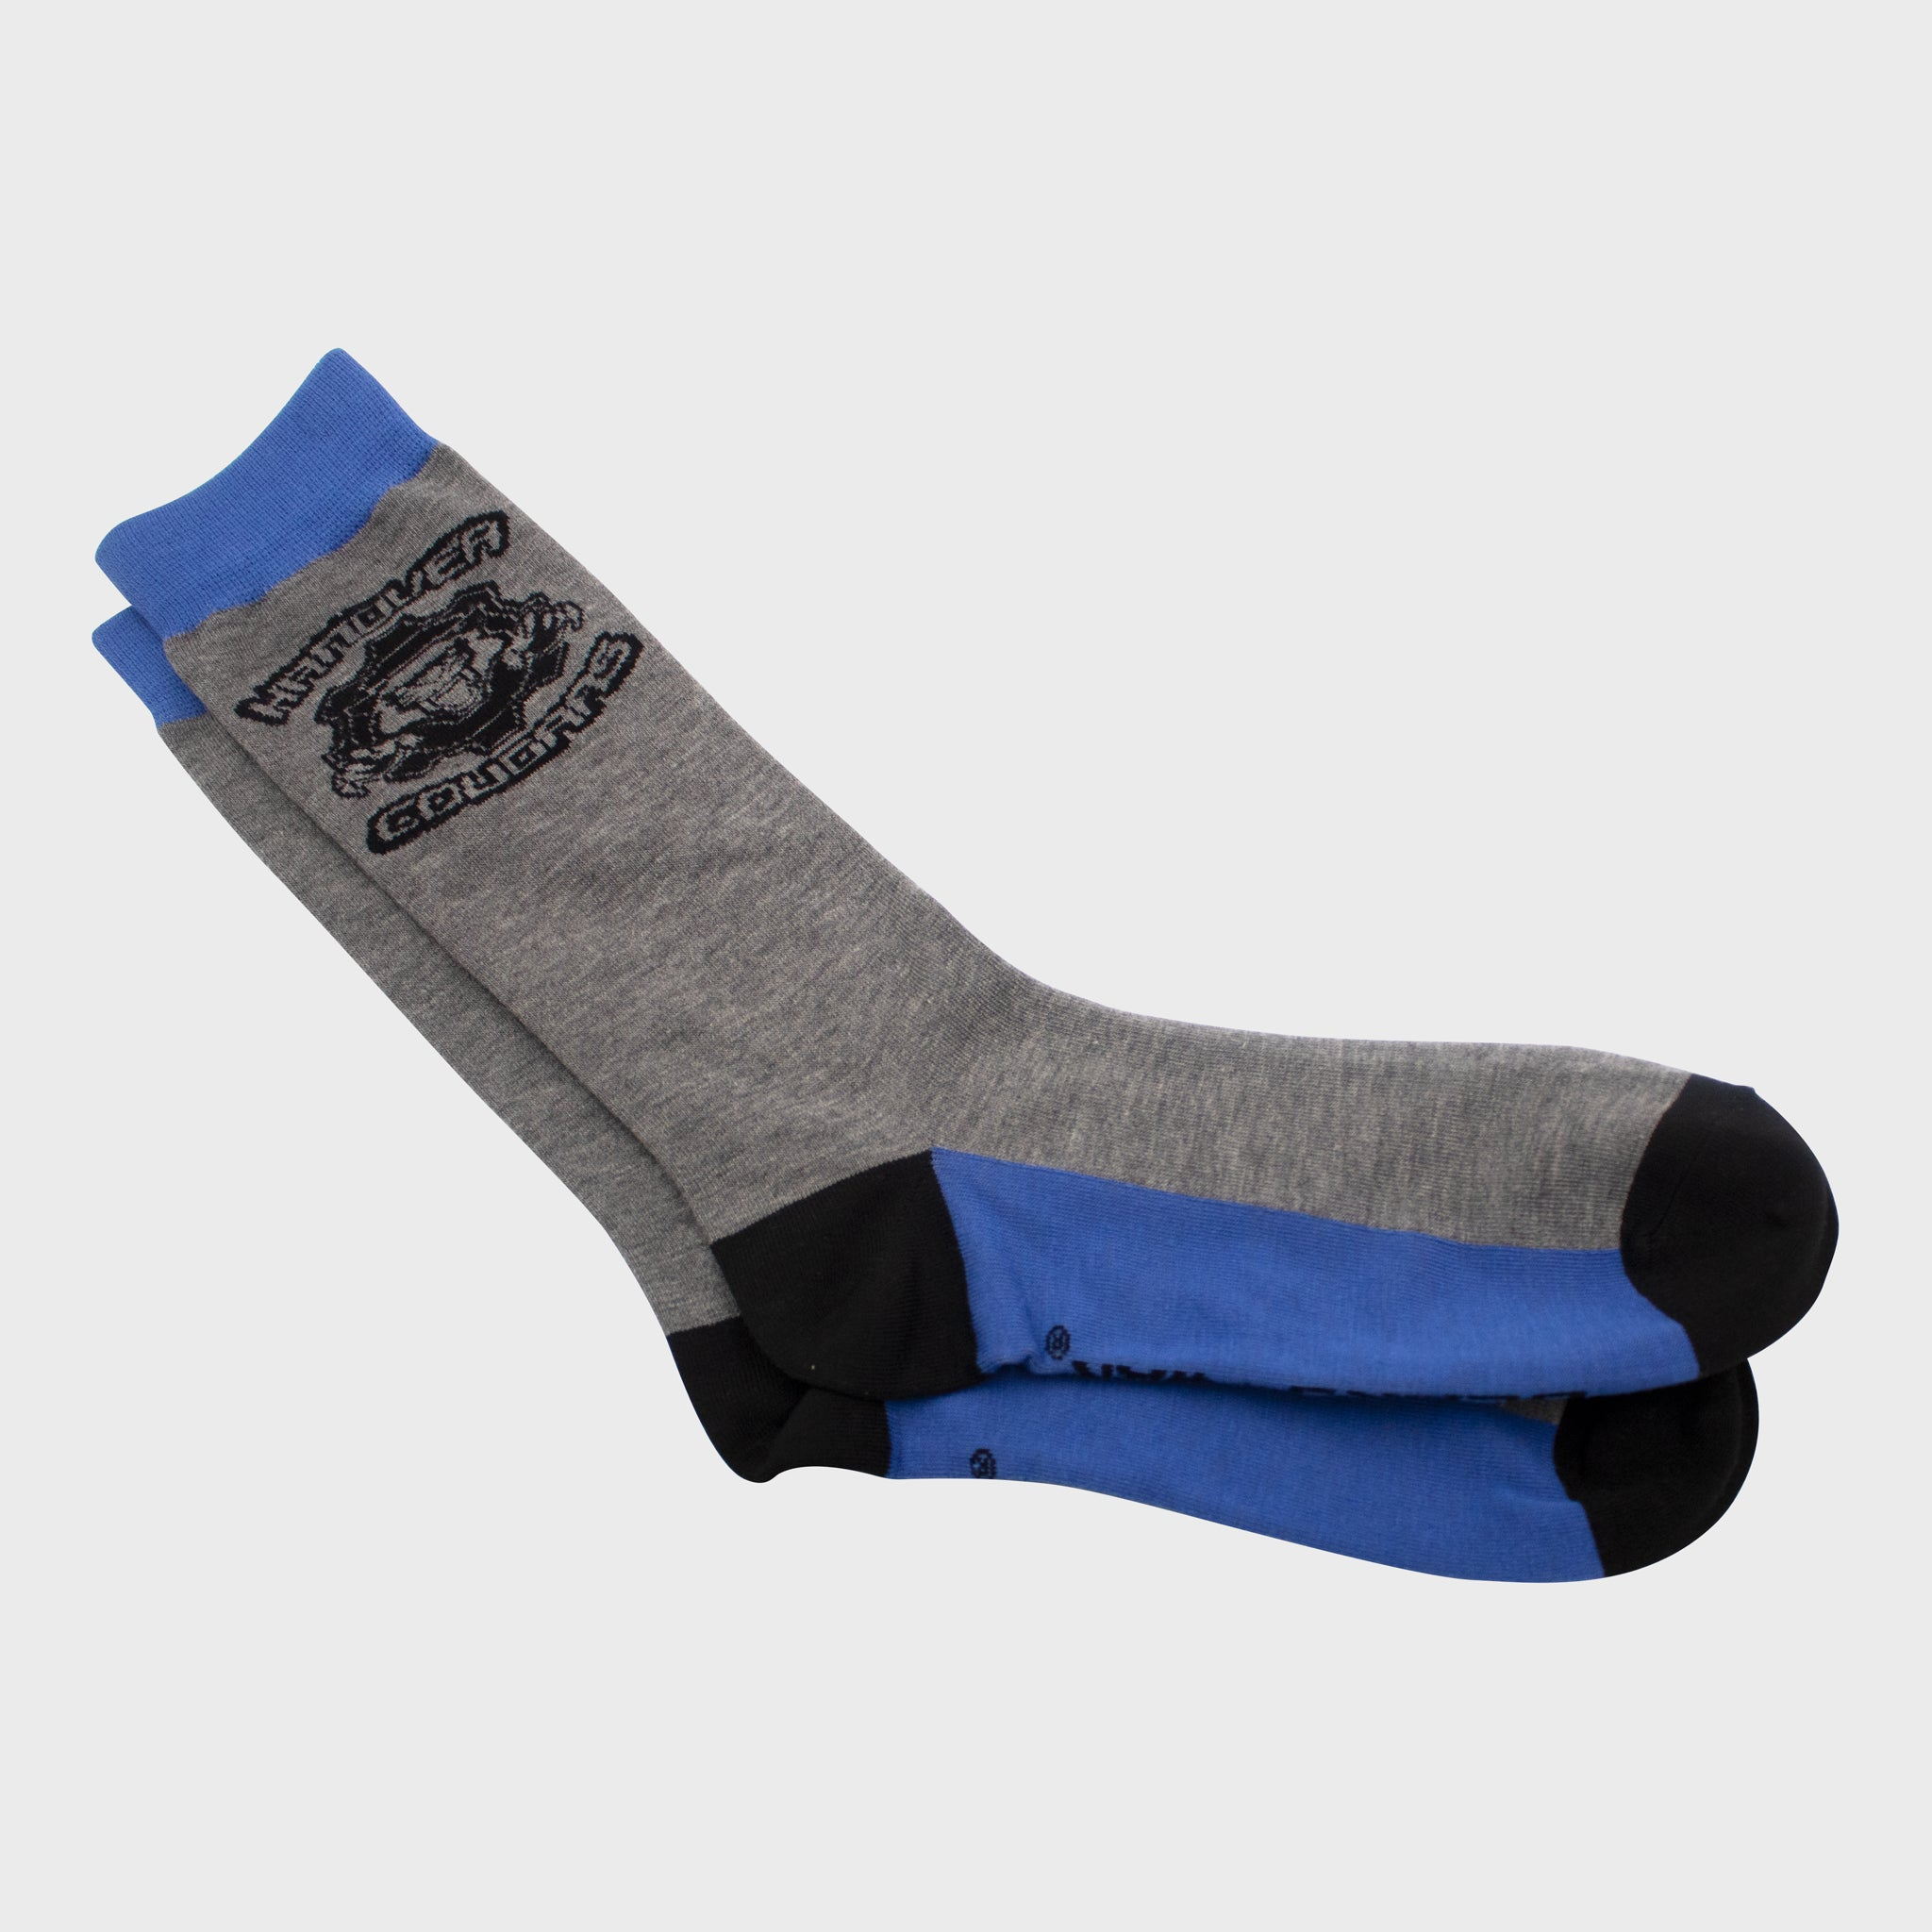 gears 5 collector box collectibles culturefly accessories exclusive crew socks apparel